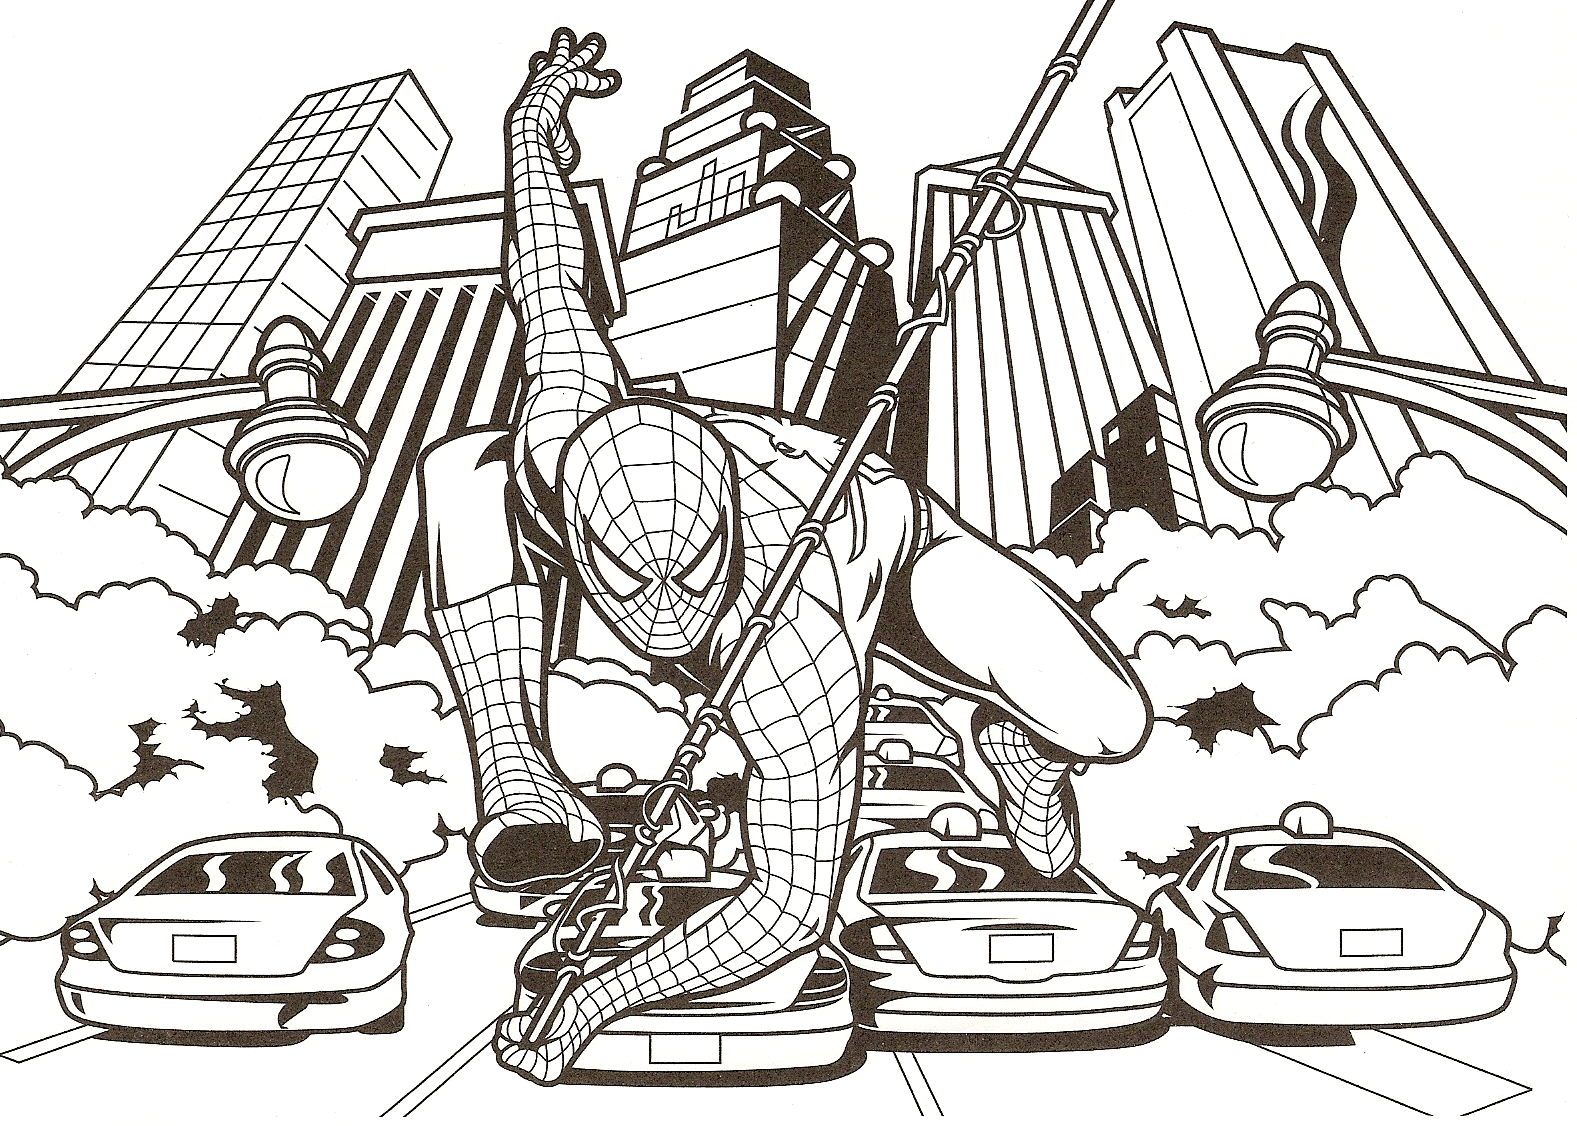 Spiderman to download for free - Spiderman - Coloring pages for kids